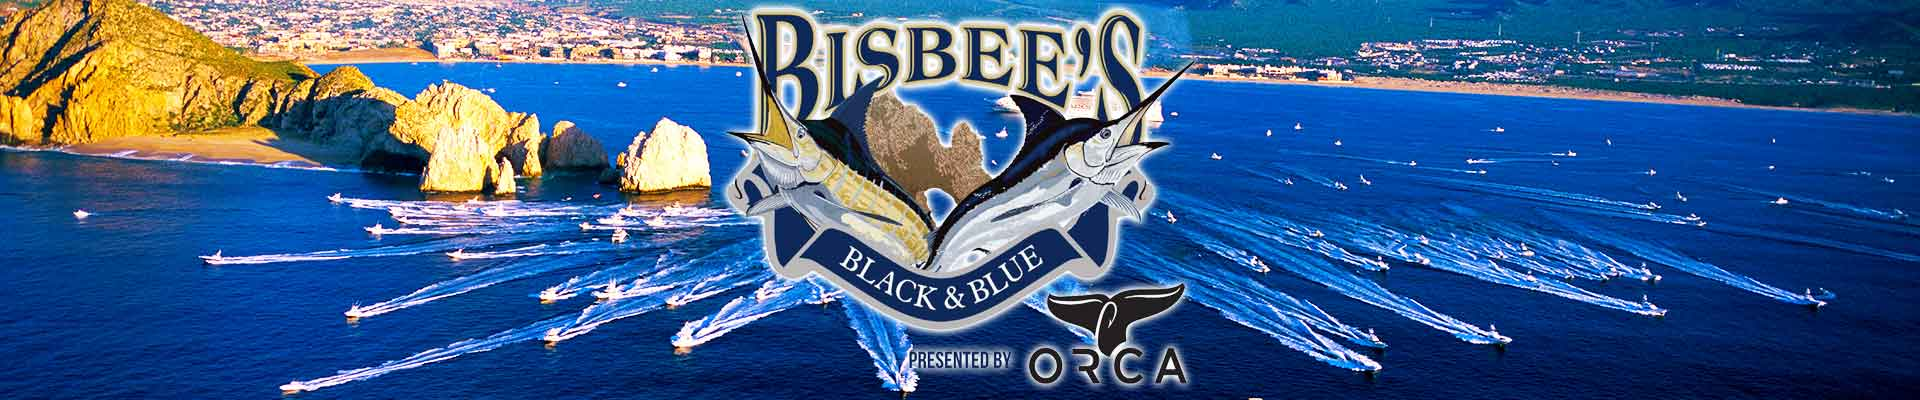 Bisbee's Black & Blue Marlin Tournaments